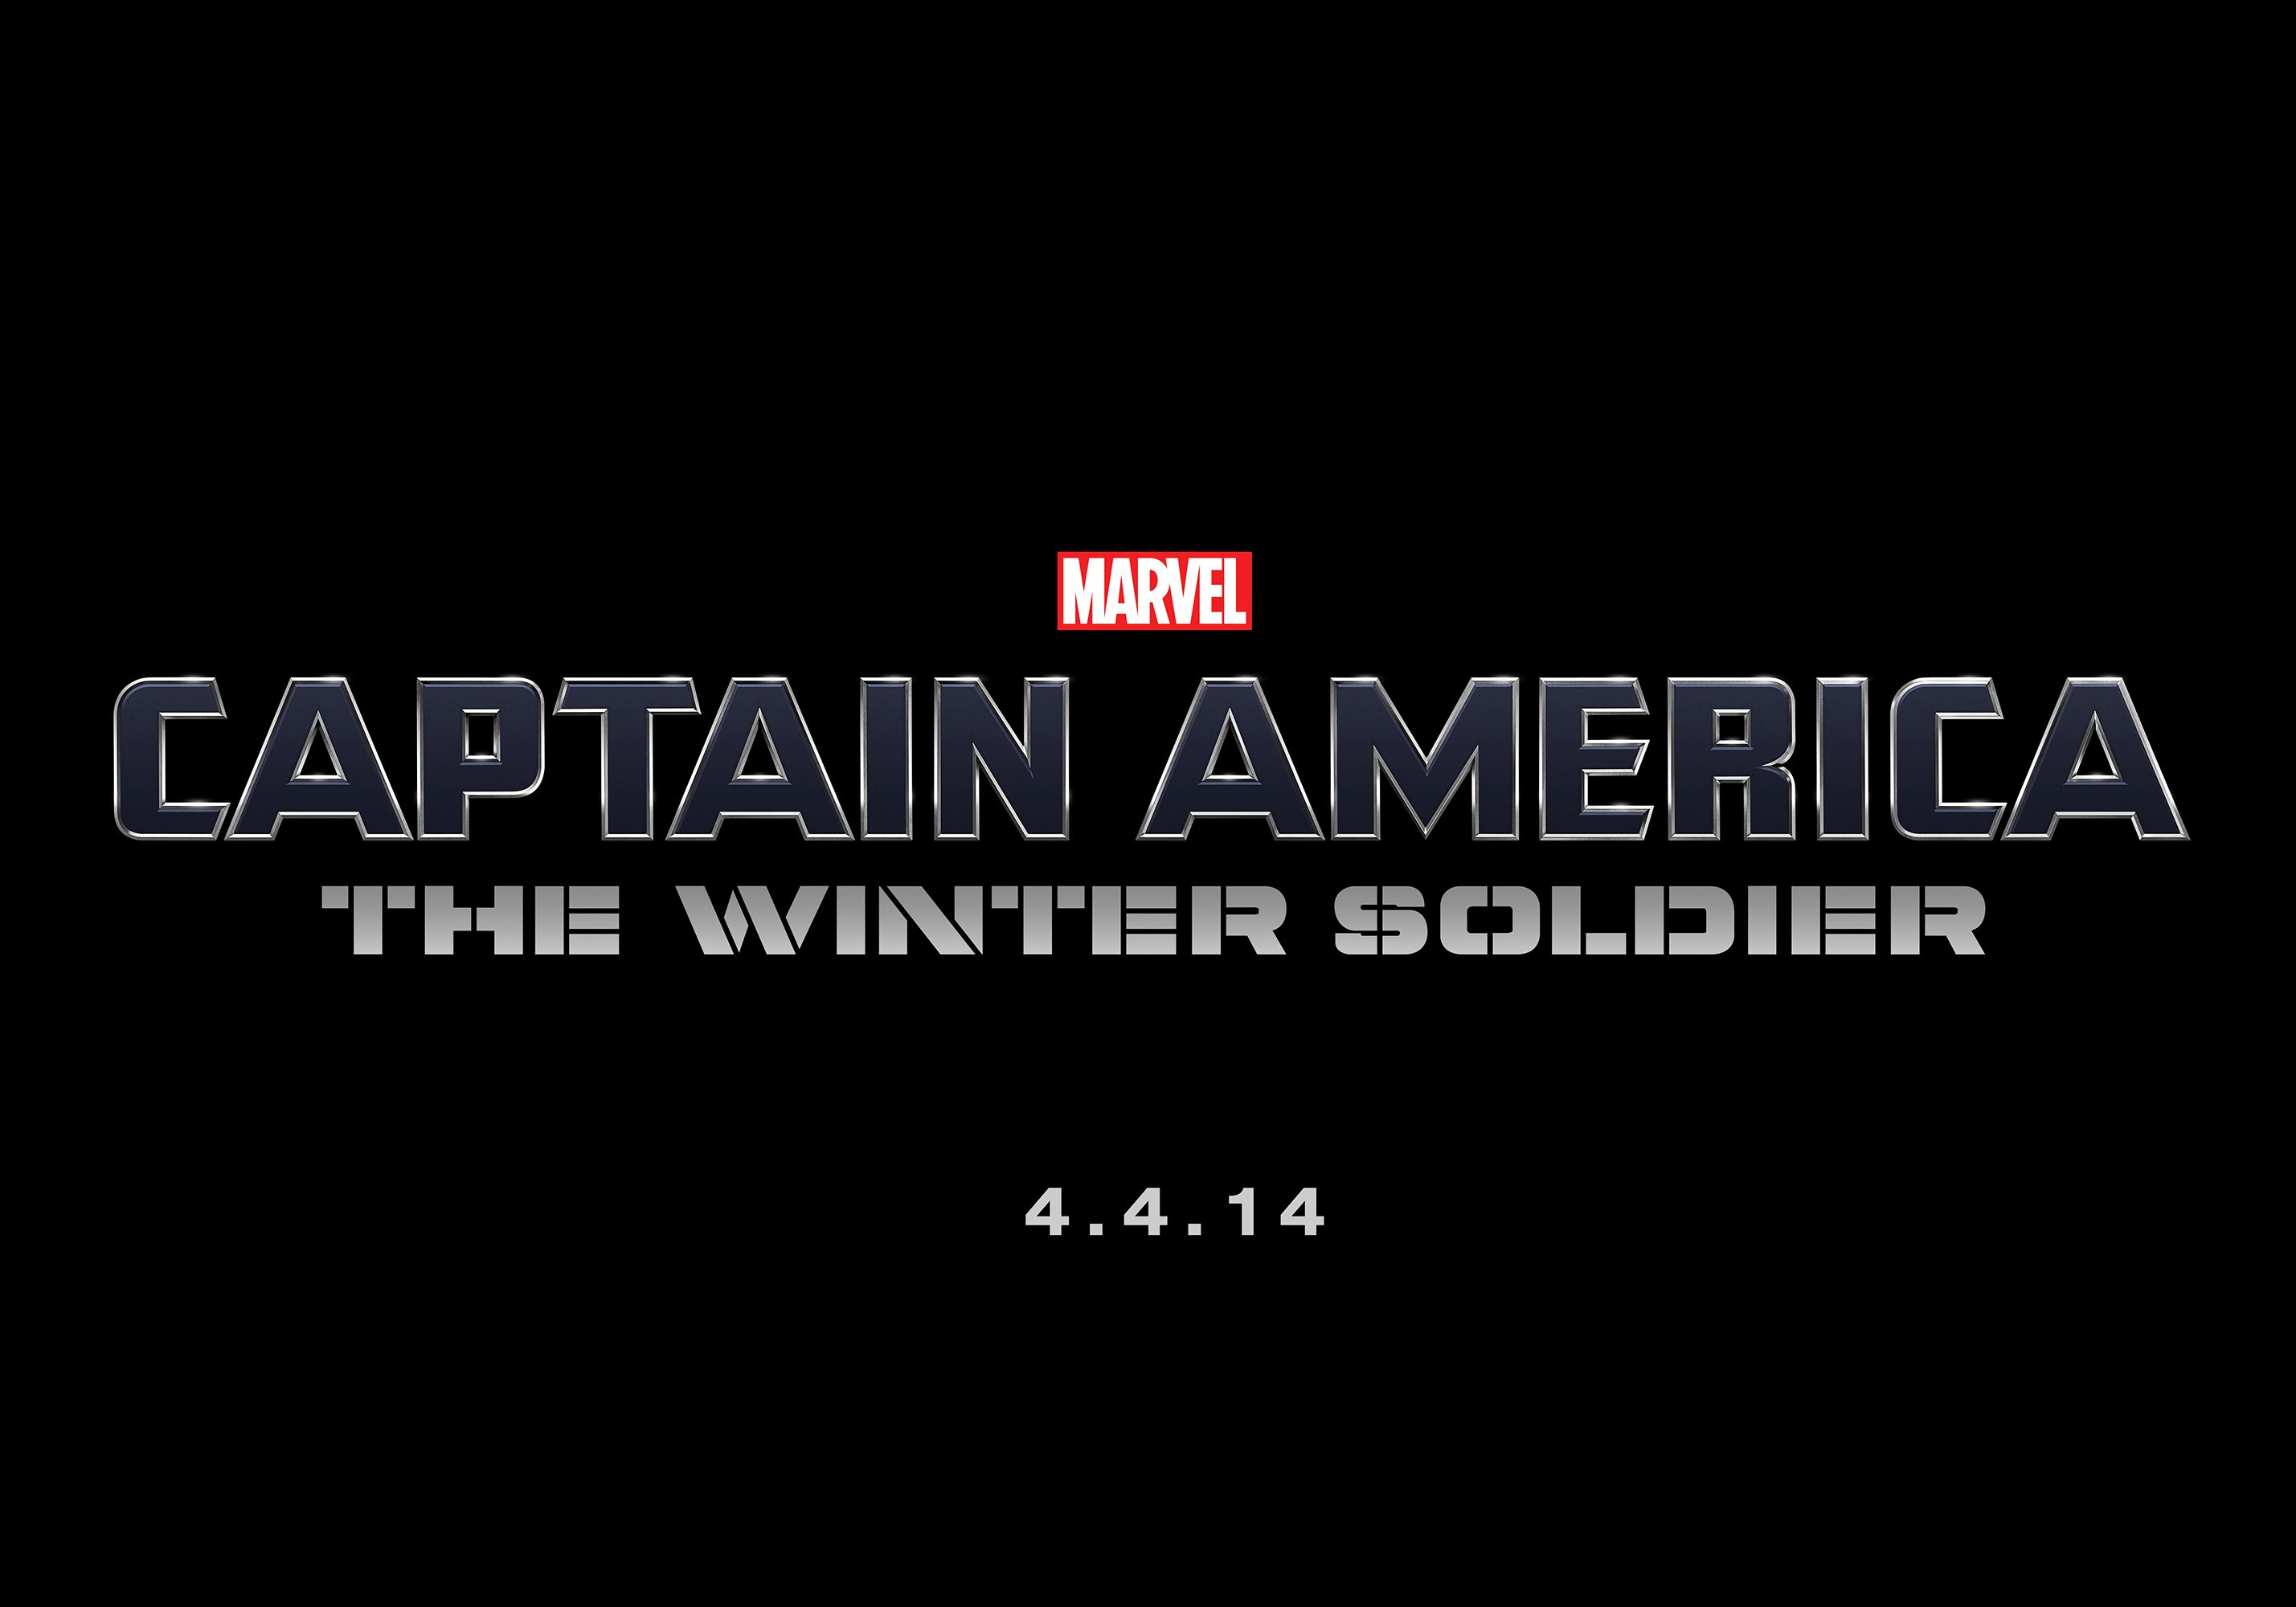 captain america the winter soldier title Google Search